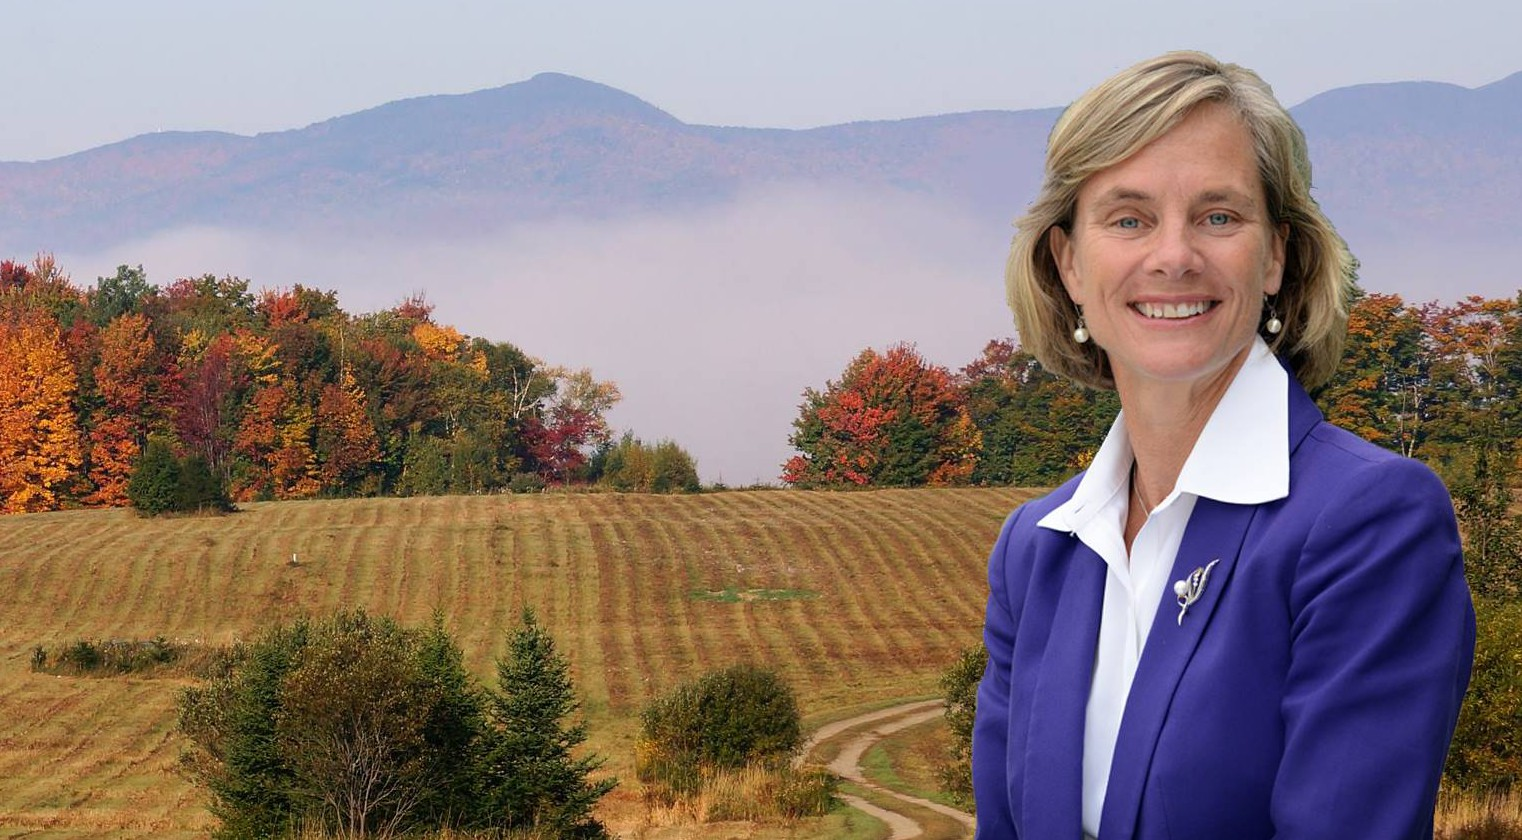 Sue Minter standing in a white shirt and blue blazer with a field behind her